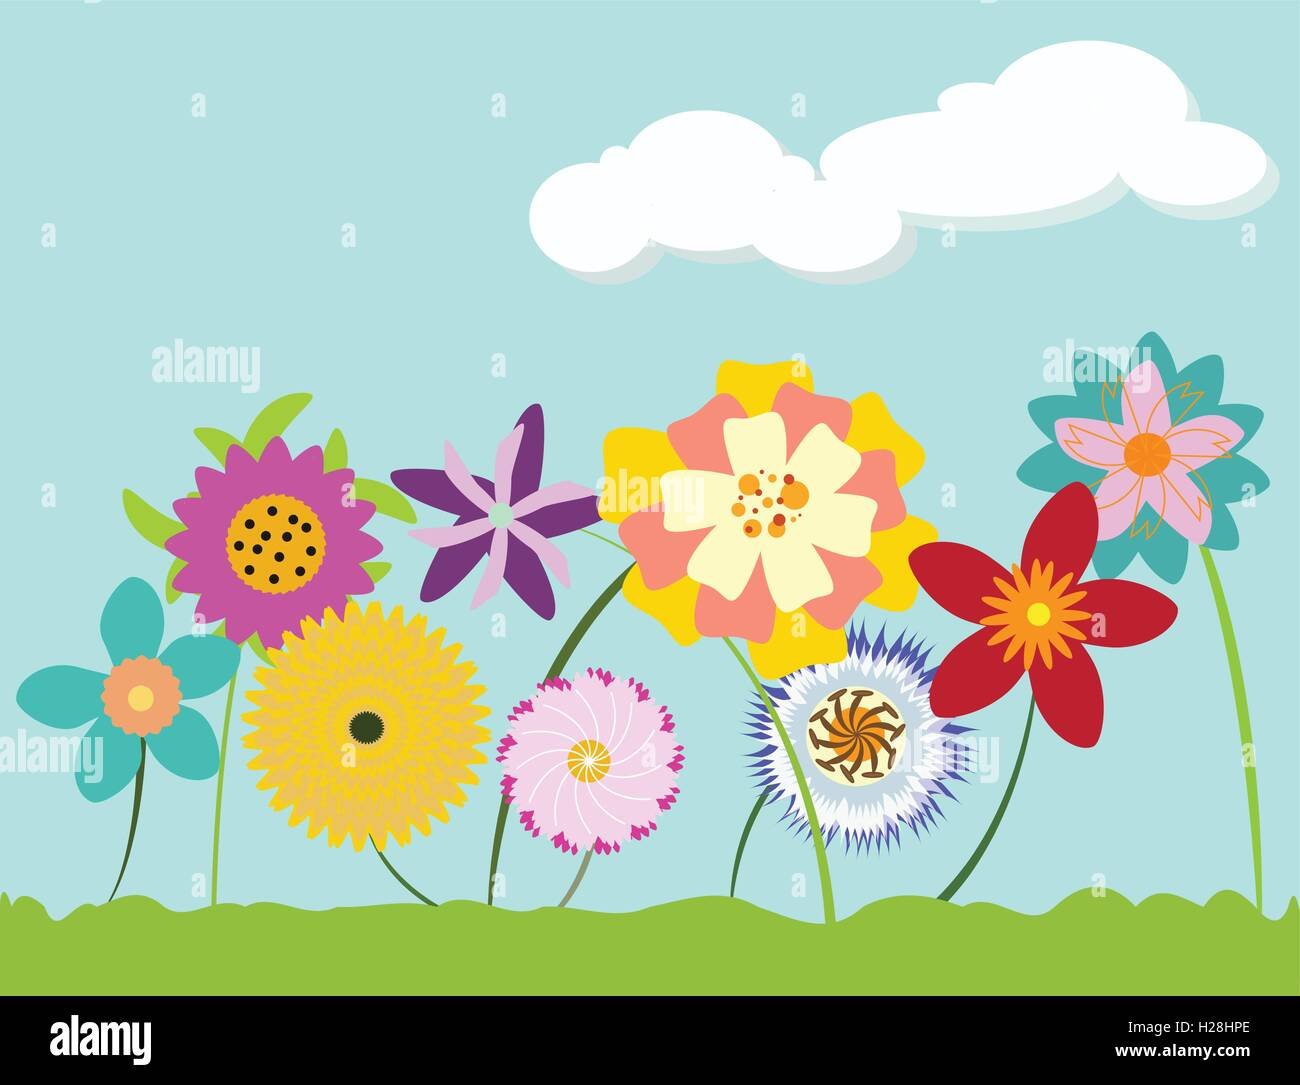 Bright multi-colored flowers sprouting up from grass against cloudy blue sky - Stock Vector